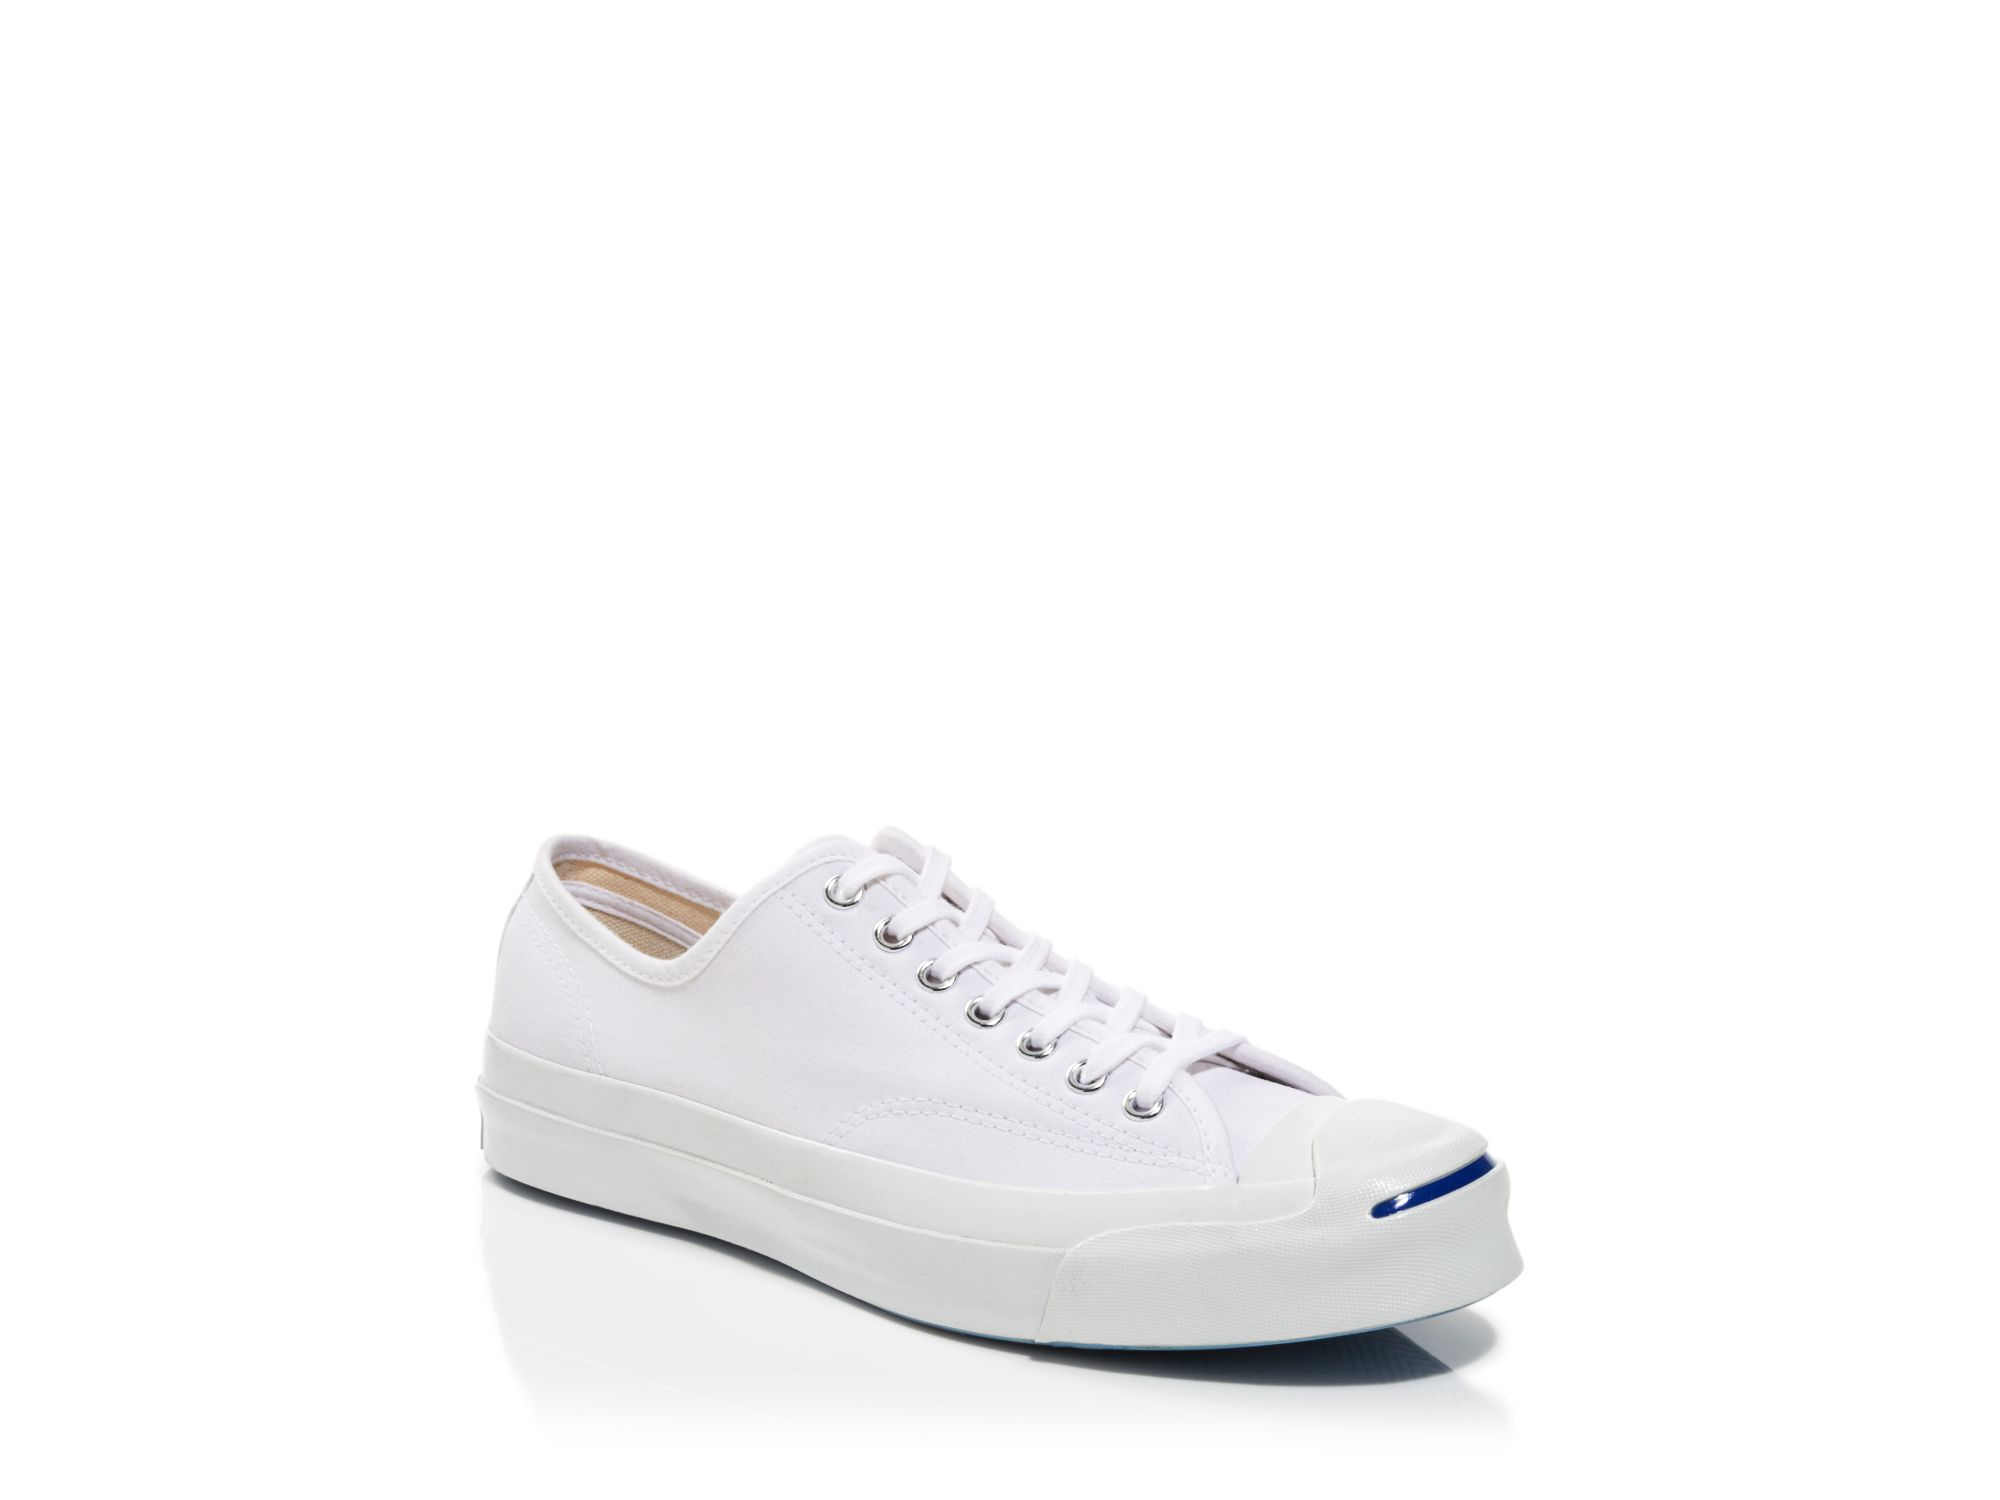 fed0b23f8e526a Lyst - Converse Jack Purcell Signature Canvas Sneakers in White for Men